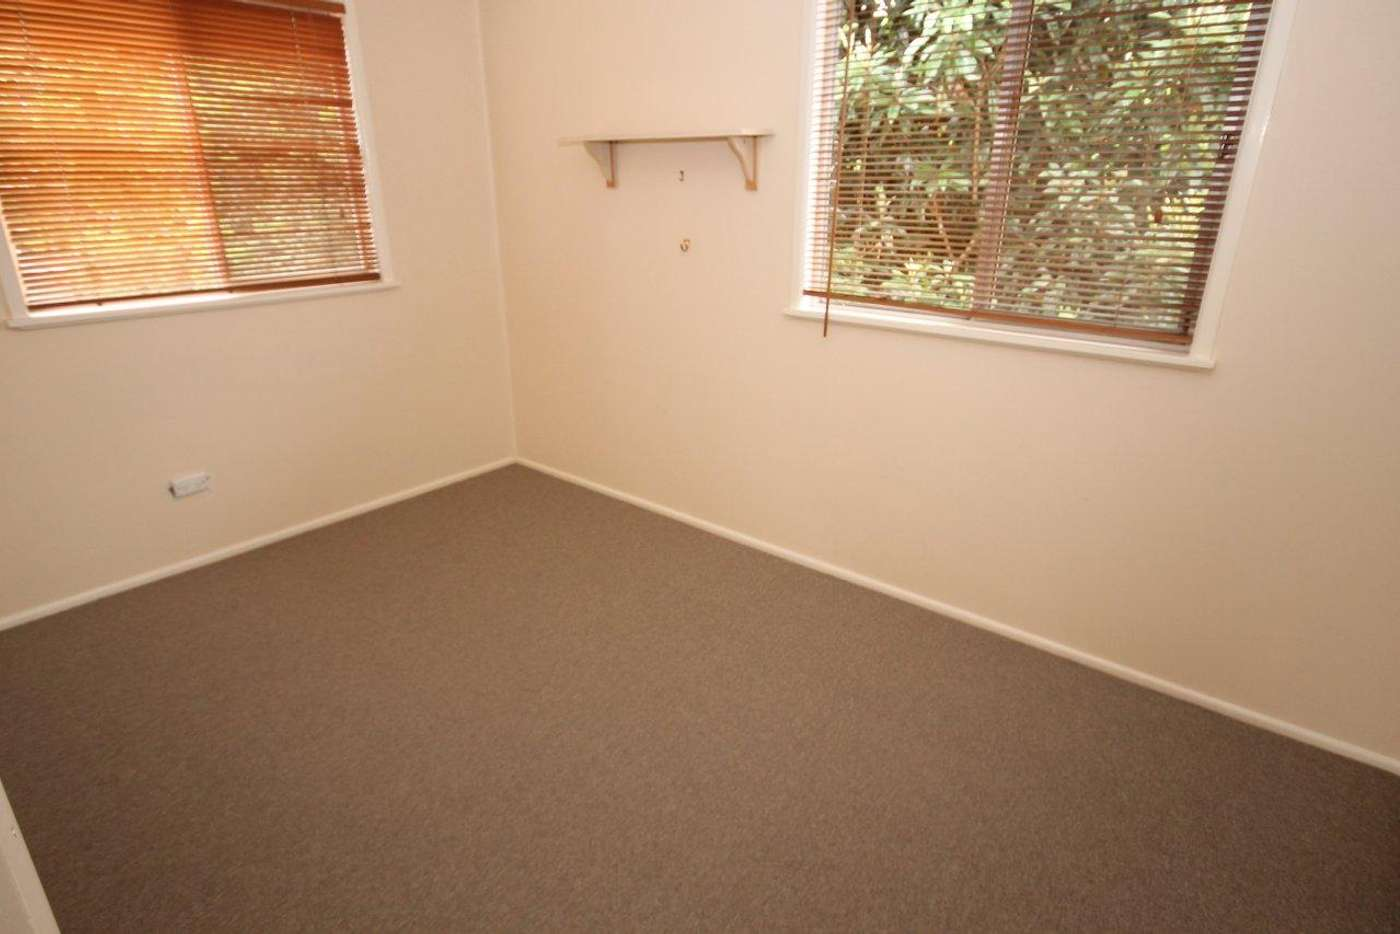 Seventh view of Homely house listing, 172 MOLLOY ROAD, Morningside QLD 4170